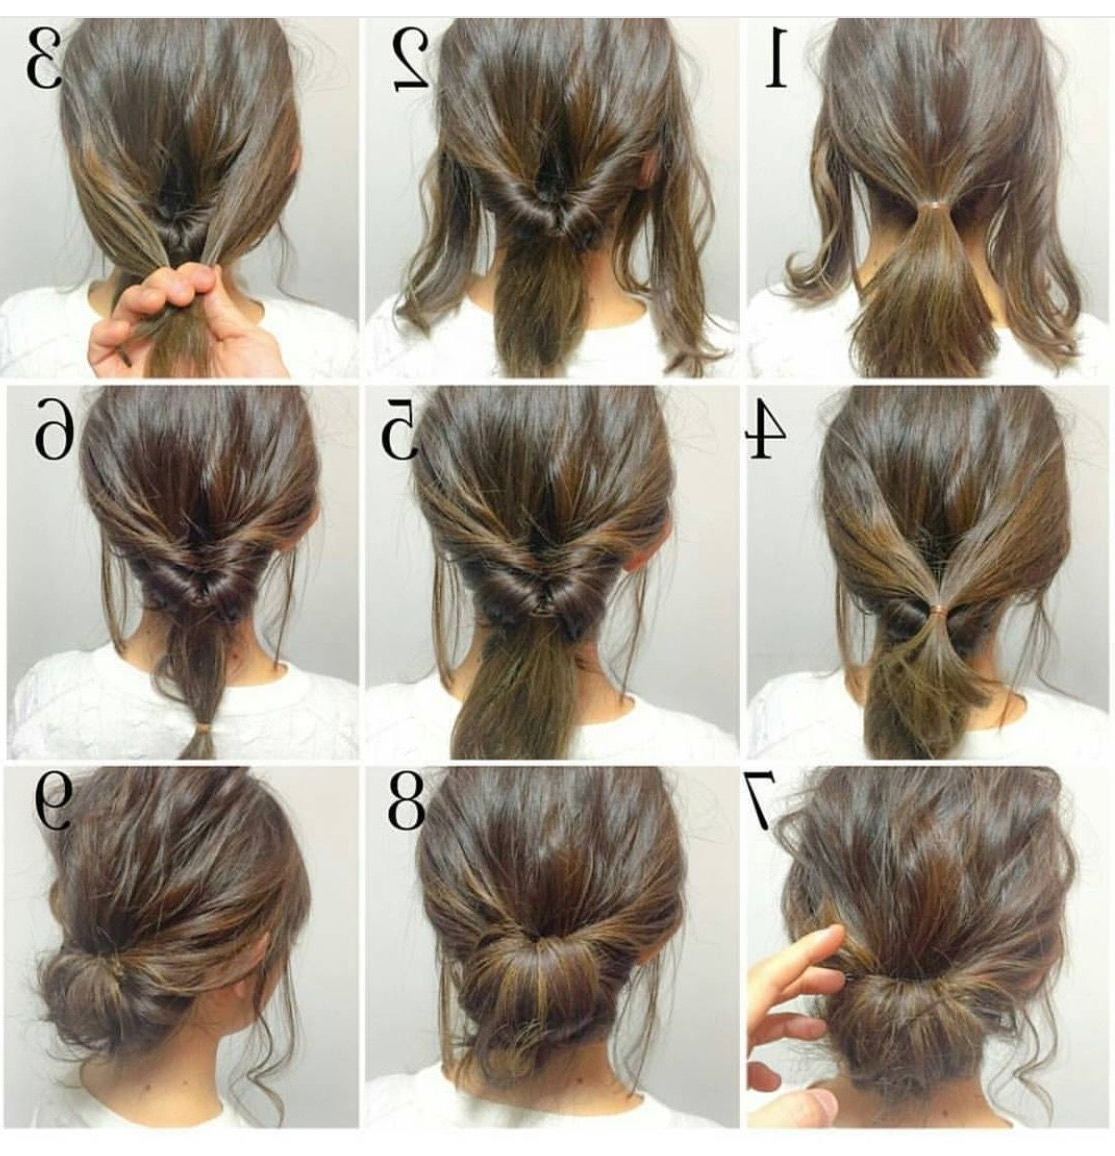 4 Messy Updos For Long Hair | Hairz | Pinterest | Updos, Hair Style Within Easy To Do Updo Hairstyles For Long Hair (View 6 of 15)